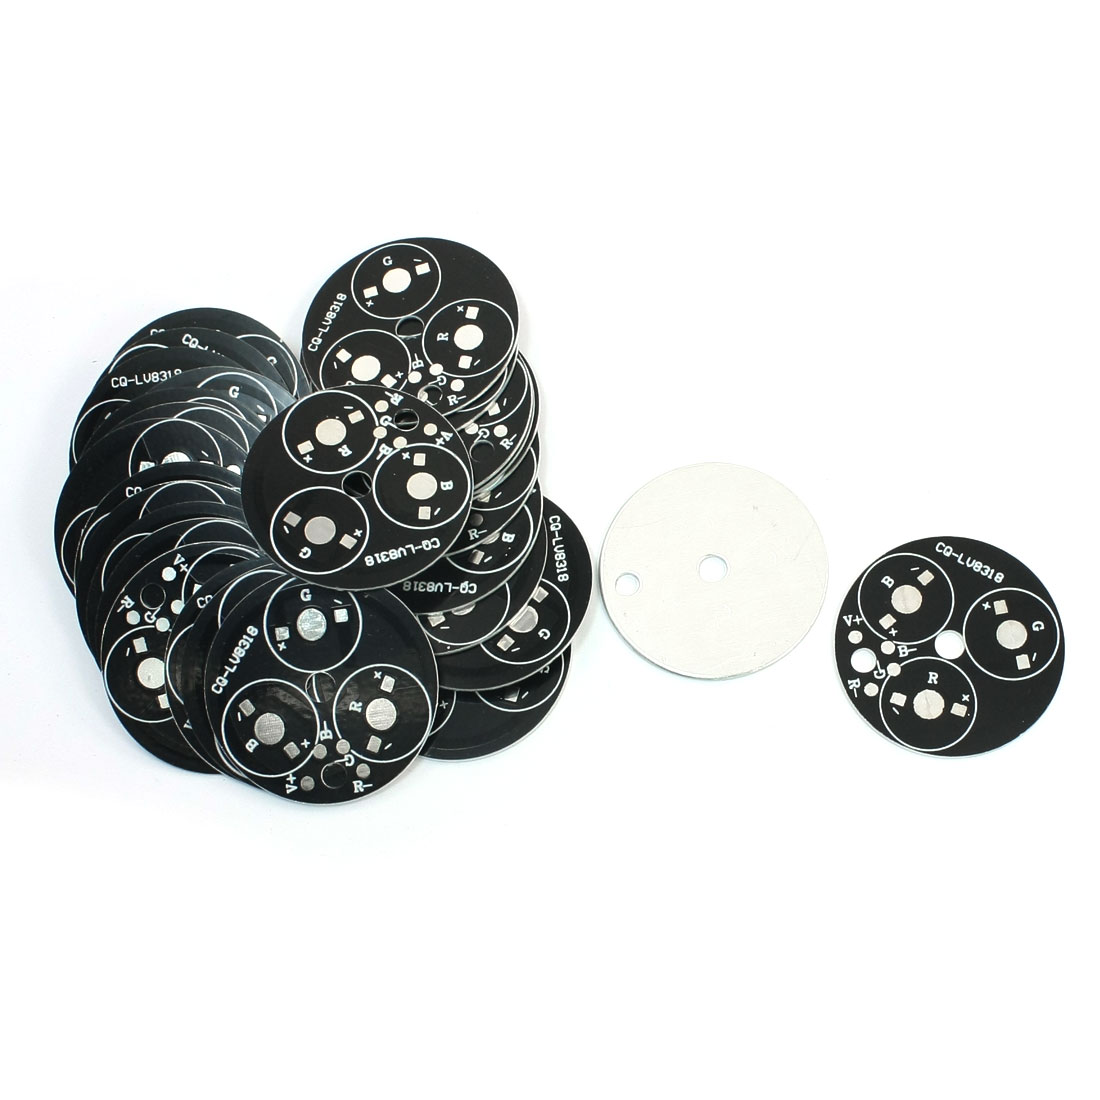 30 Pcs 49mm Diameter Circle Aluminum Base Plate PCB Circuit Board for 3 x 1W/3W RGB LEDs Bulb